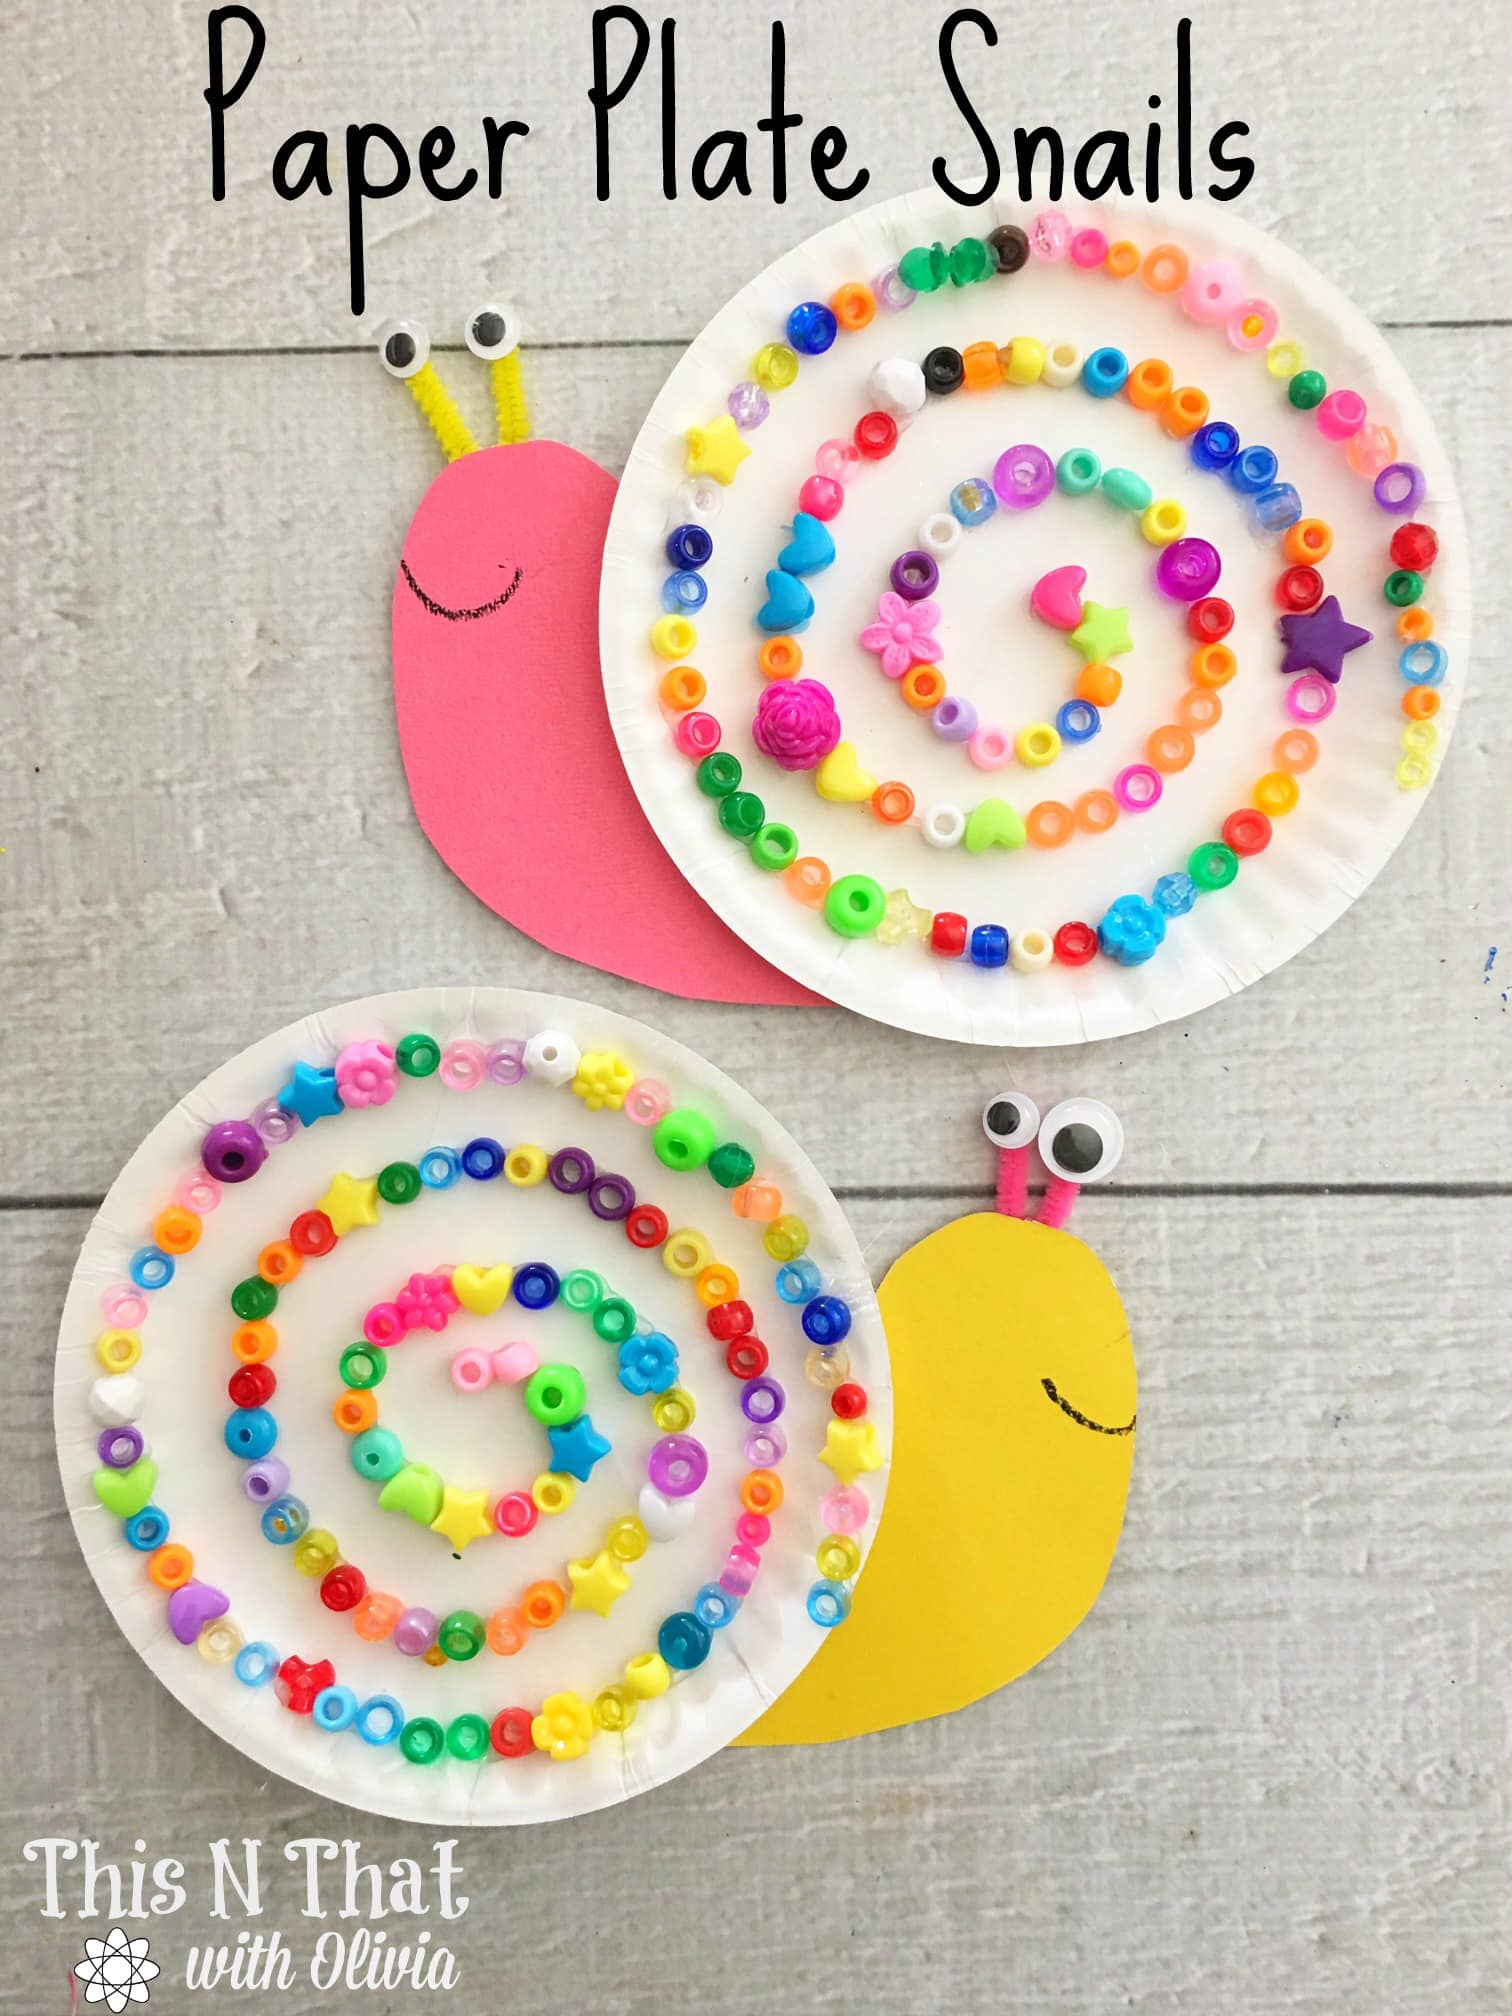 Paper Plate Snails Craft #Snail #Craft #DIY #Kids